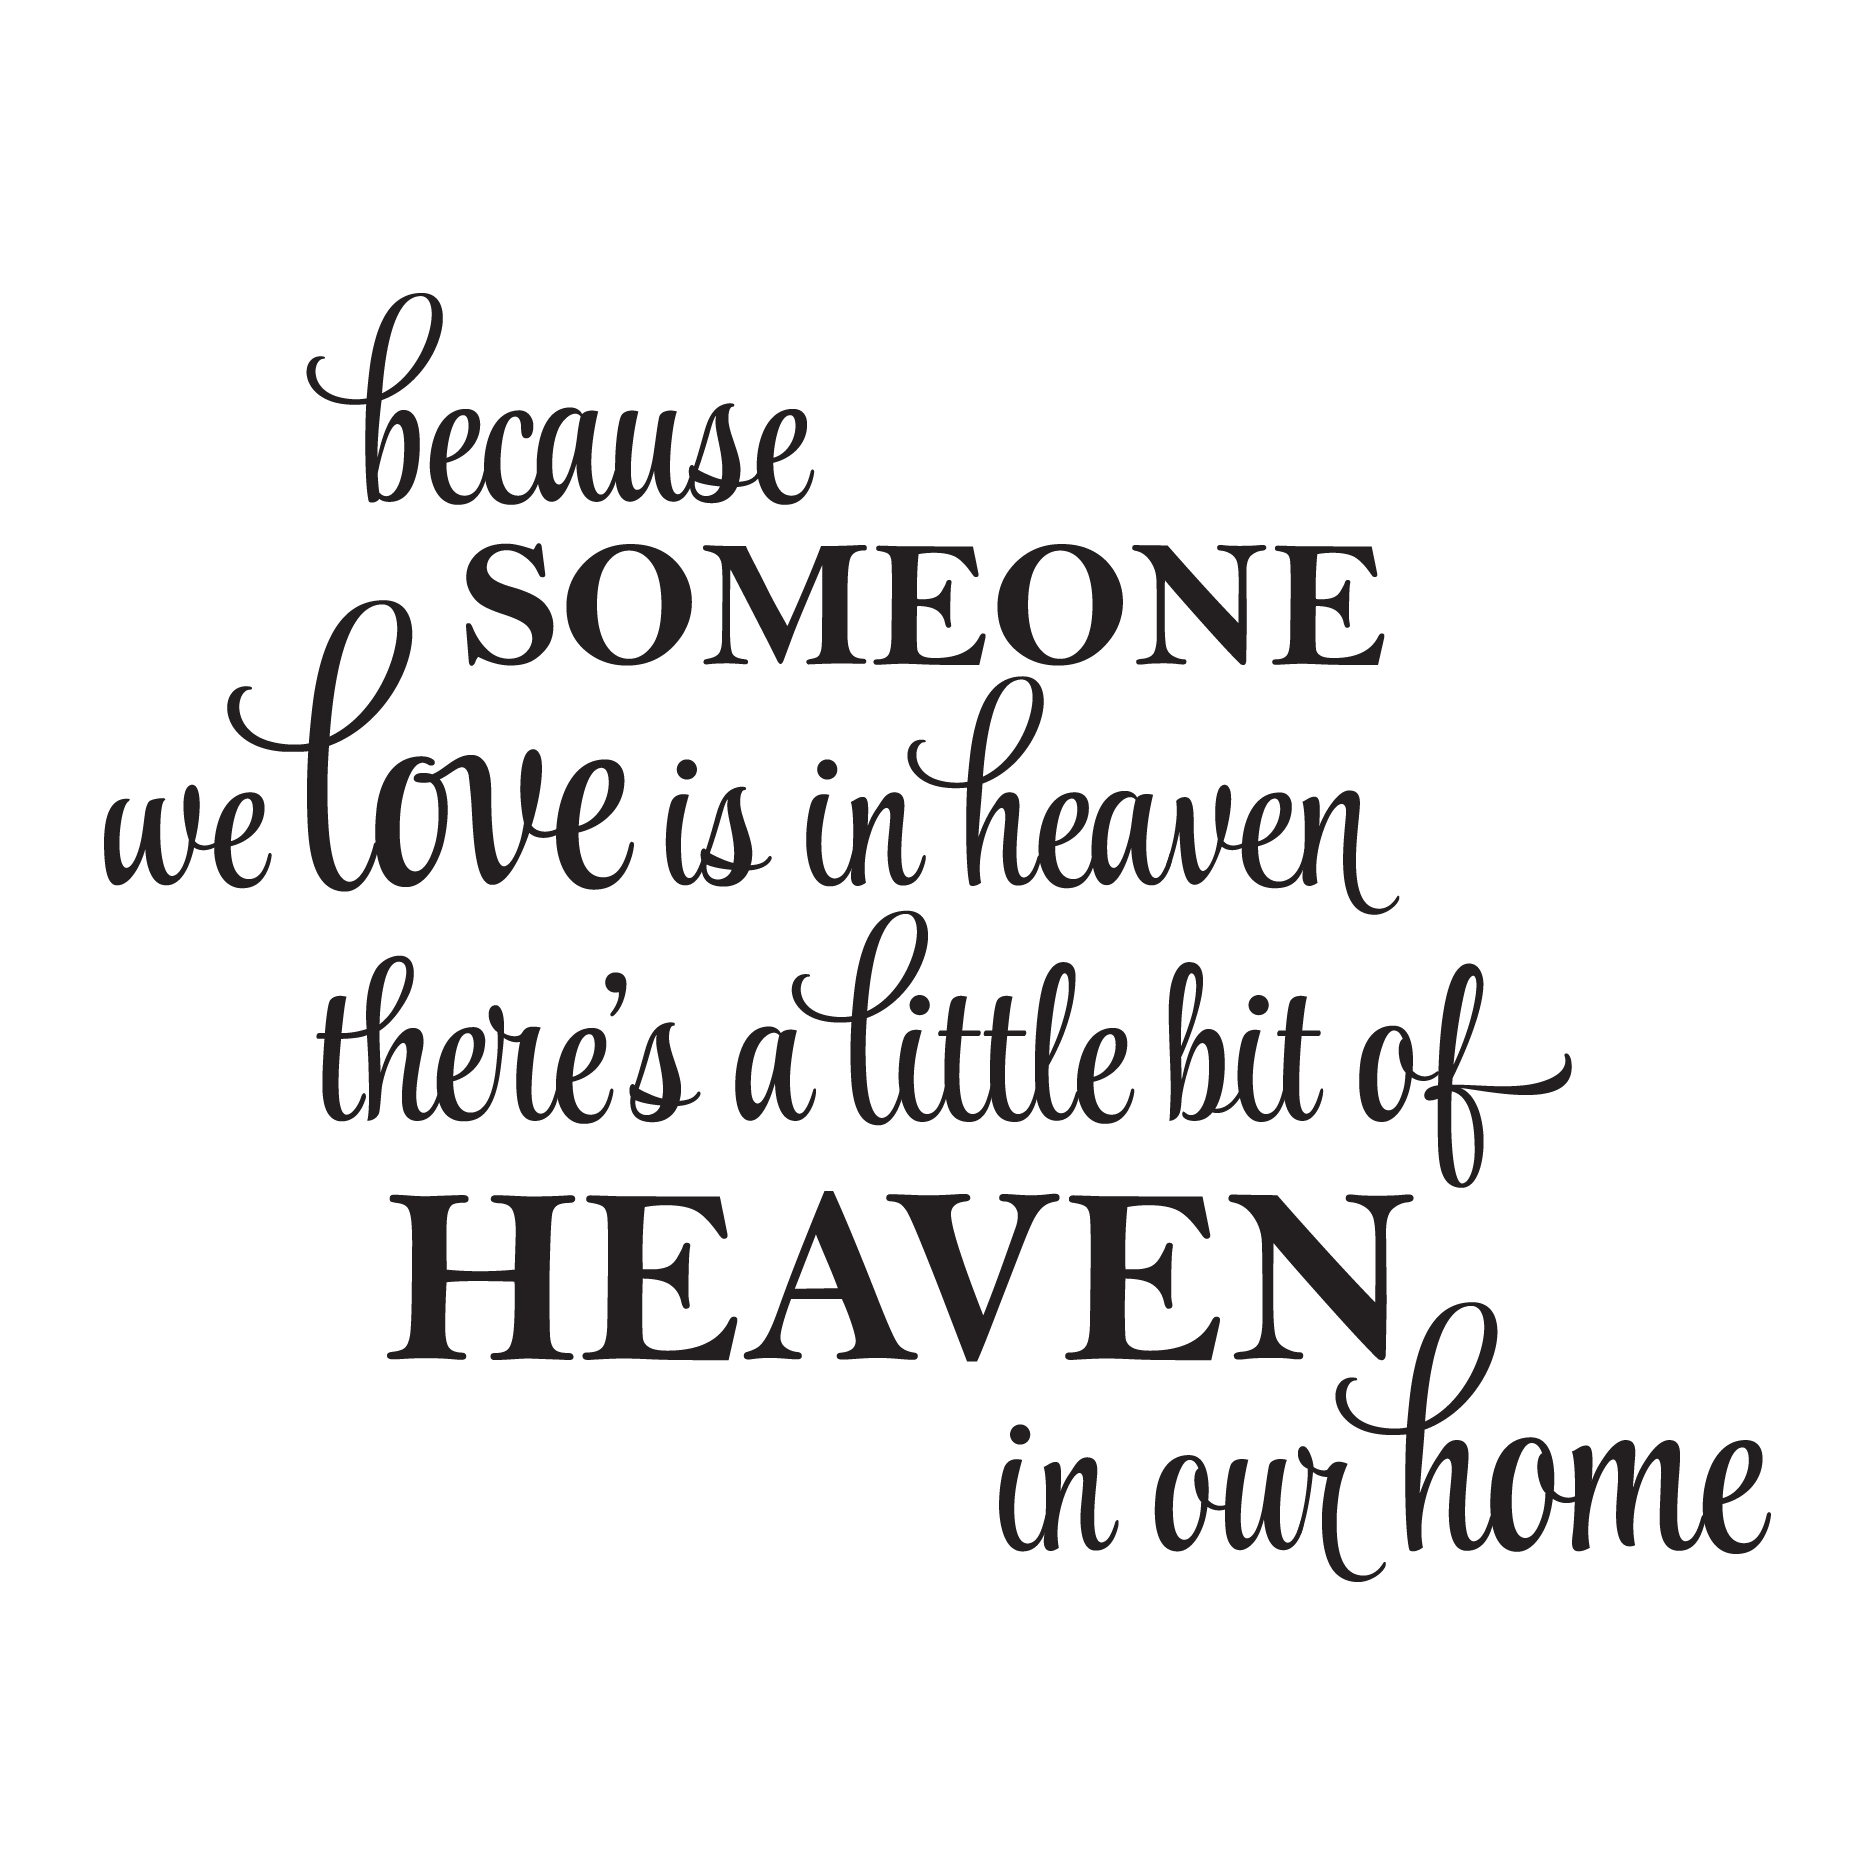 A Little Bit Of Heaven In Our Home Wall Quotes Decal